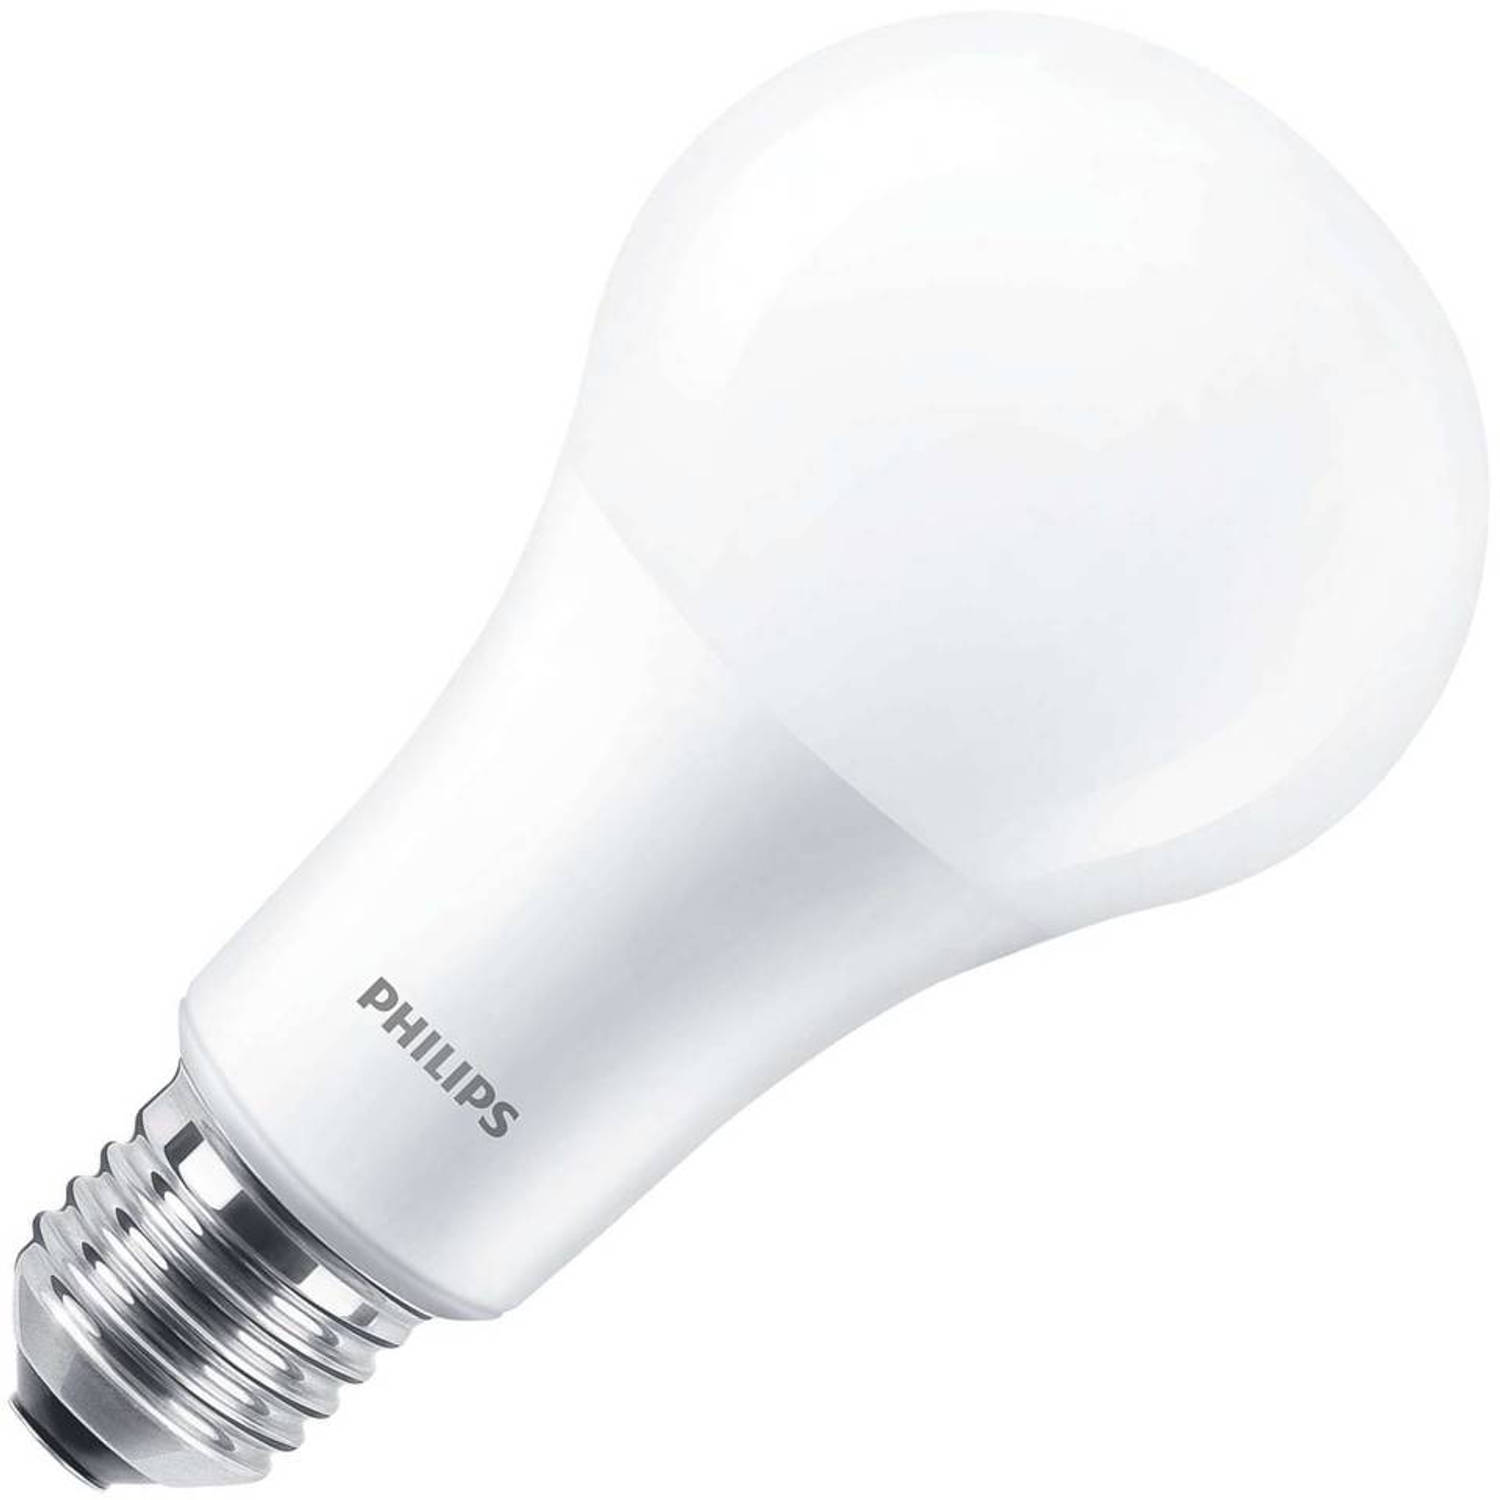 Philips standaardlamp led mat 15w (vervangt 100w) grote fitting grote fitting e27 dimtone